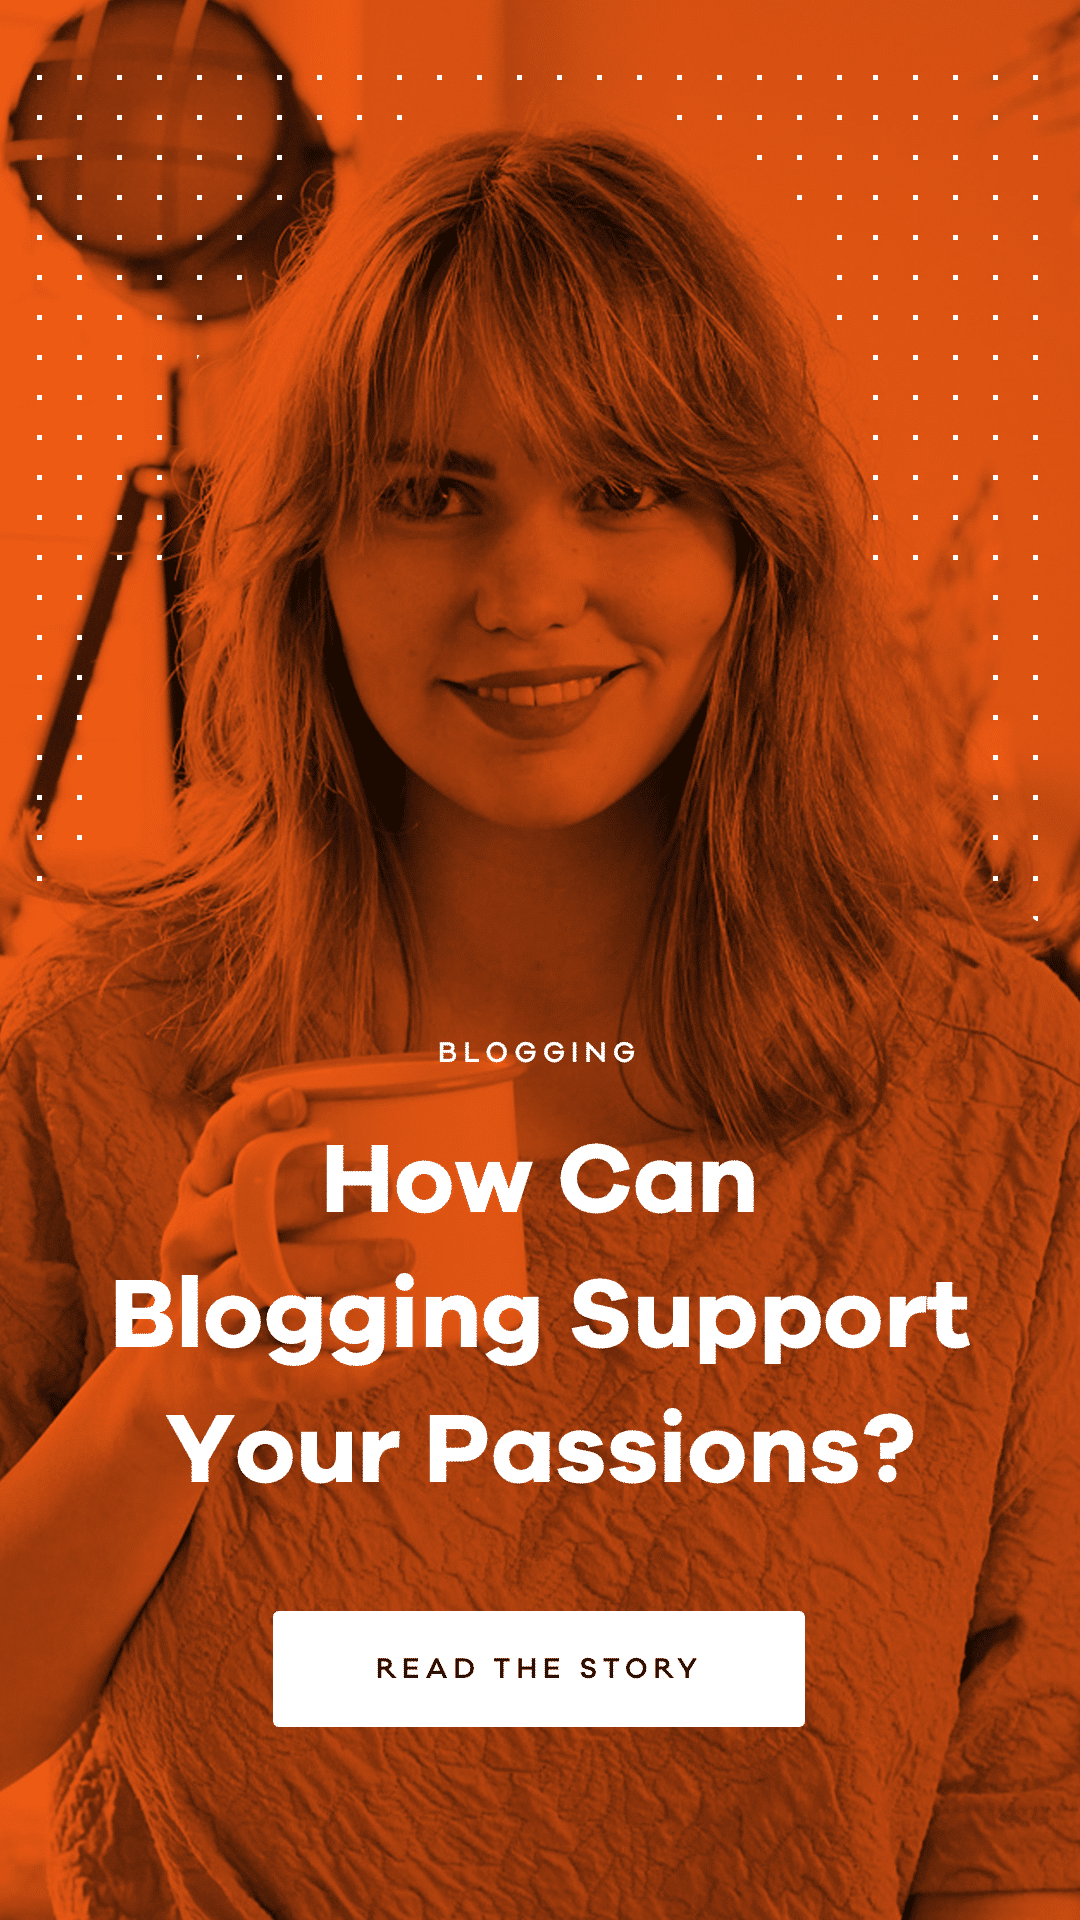 Frauke is a Belgian DIY creator who uses blogging as a way to support her creative passions. Learn how she uses her blog to achieve that.